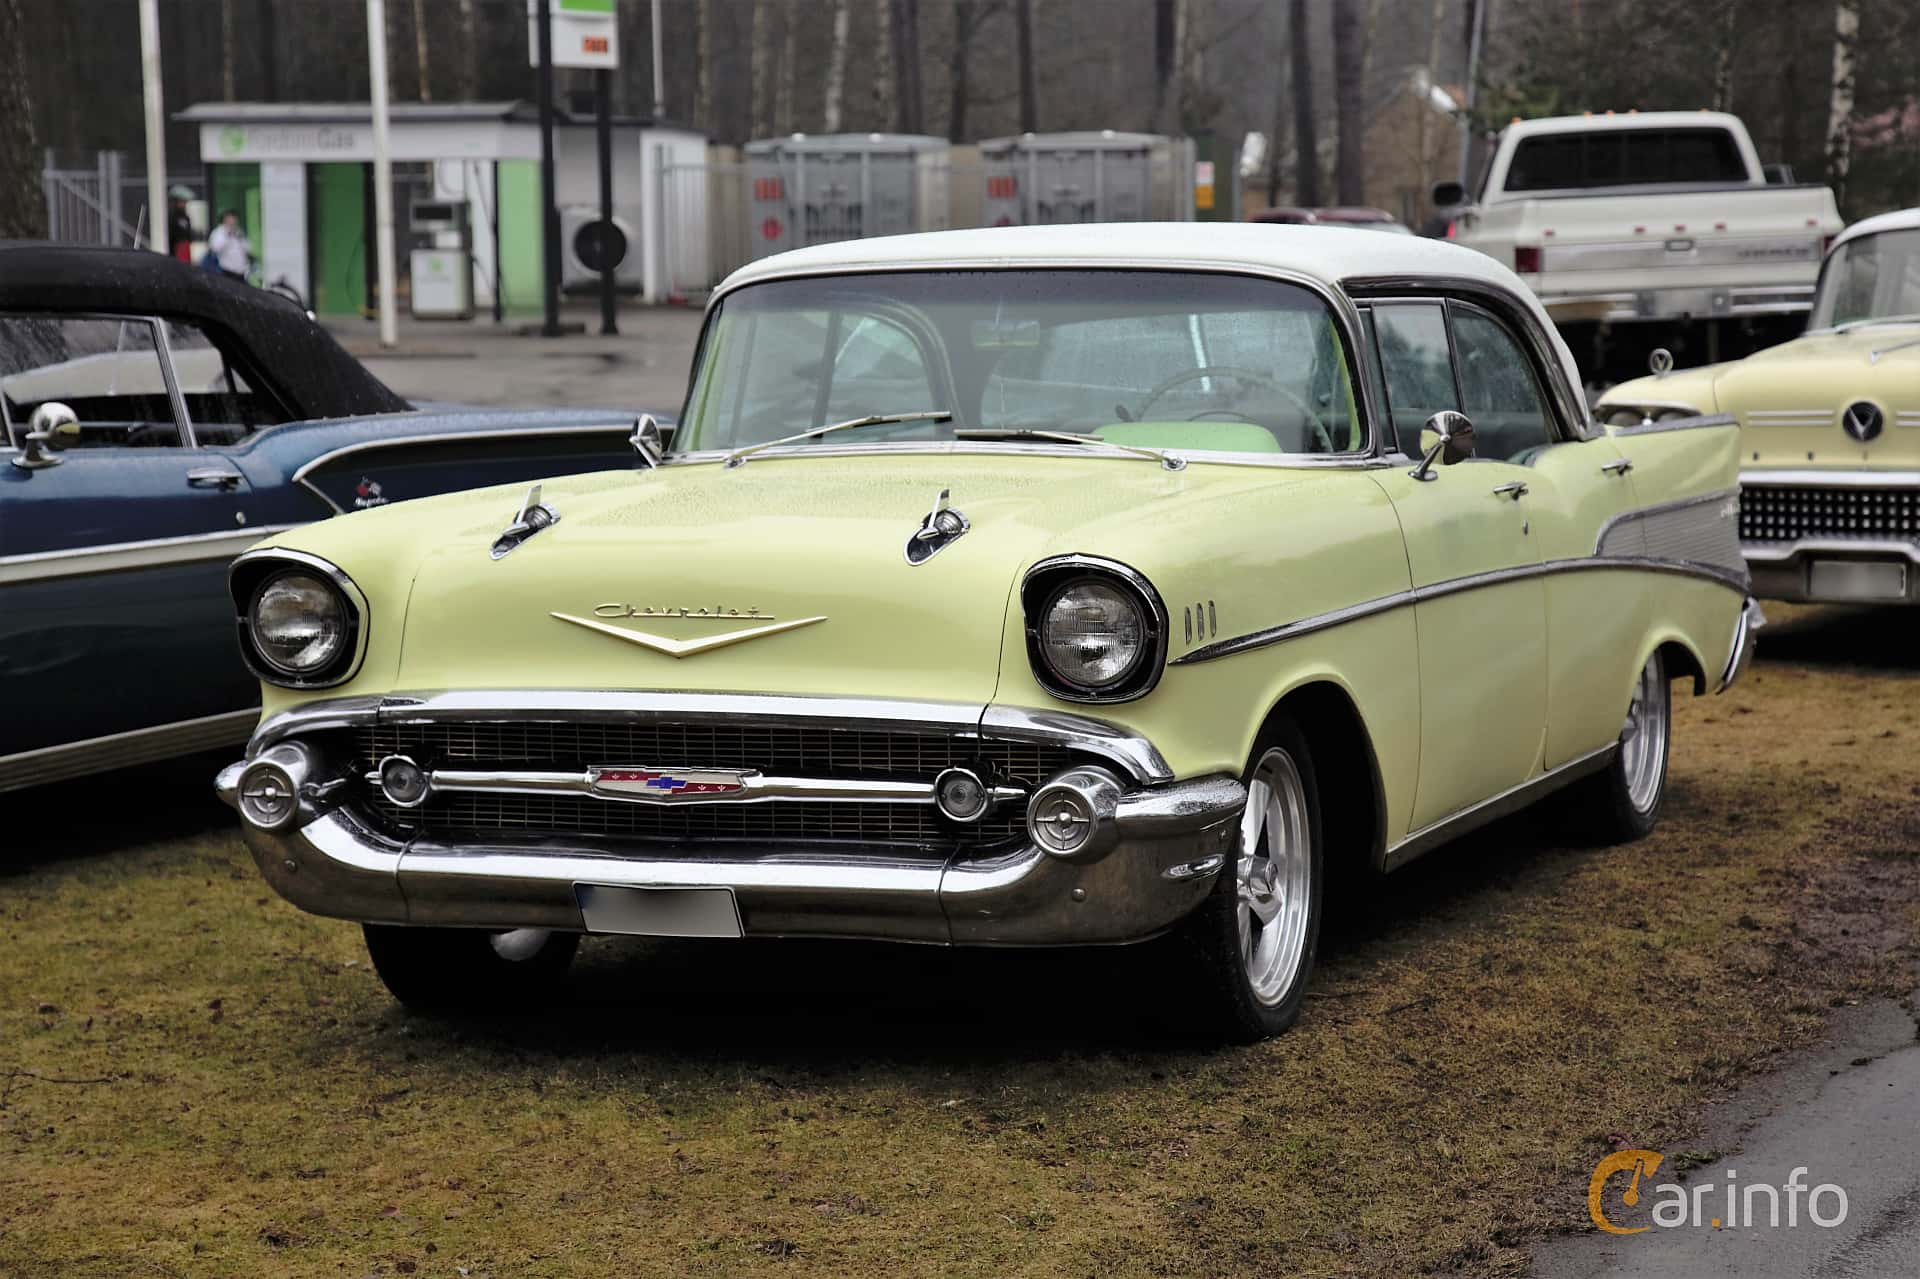 1 Images Of Chevrolet Bel Air 4 Door Sedan 46 V8 Powerglide 223hp 1957 Chevy Front Side 223ps